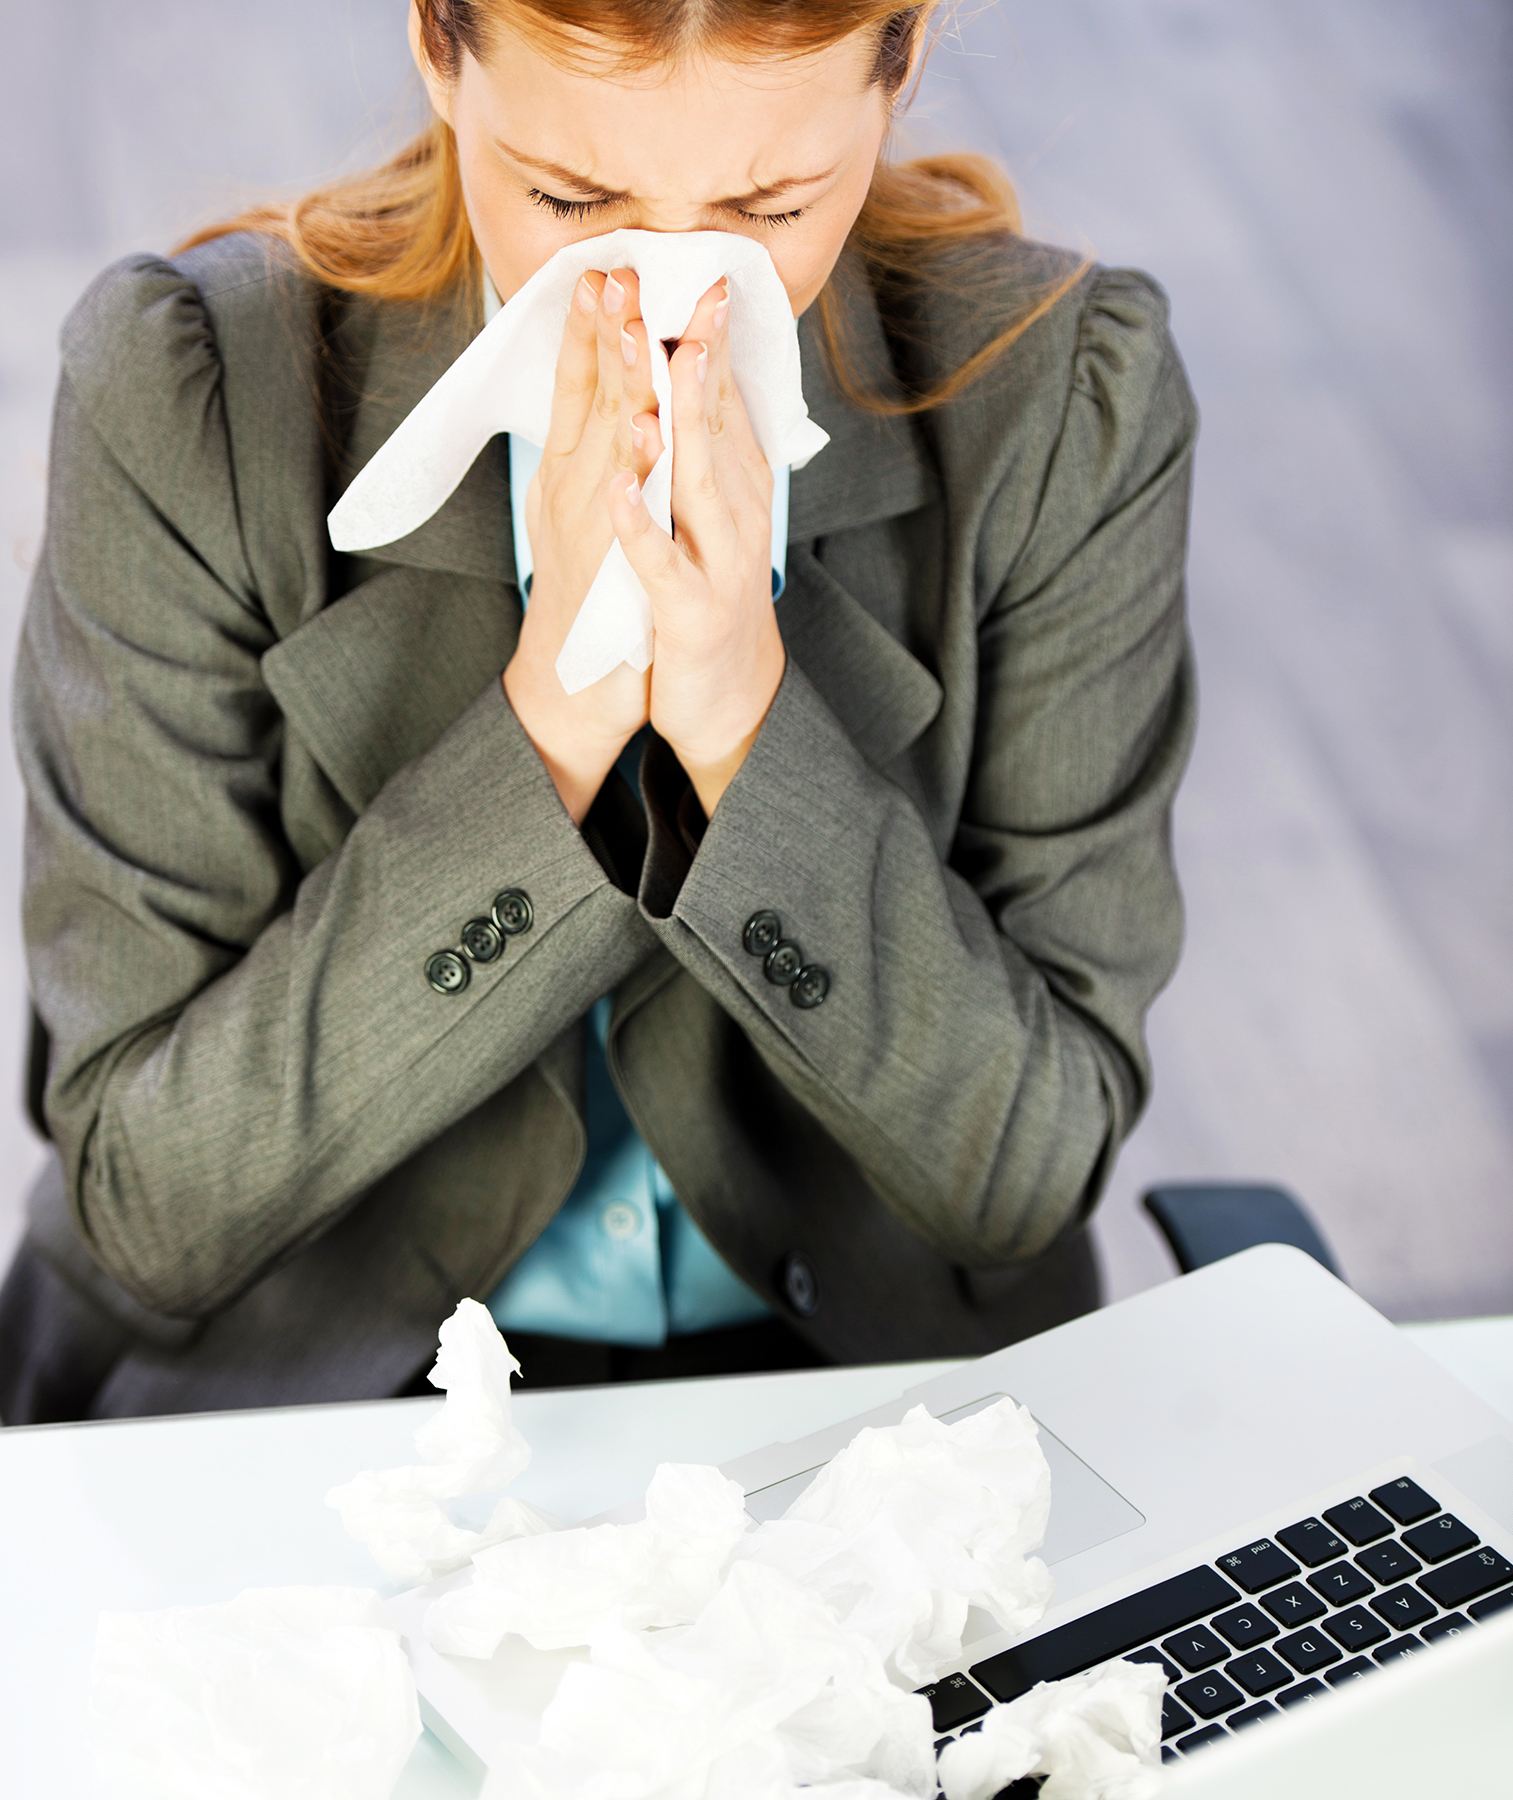 Why SoMany People Go to Work When They're Sick